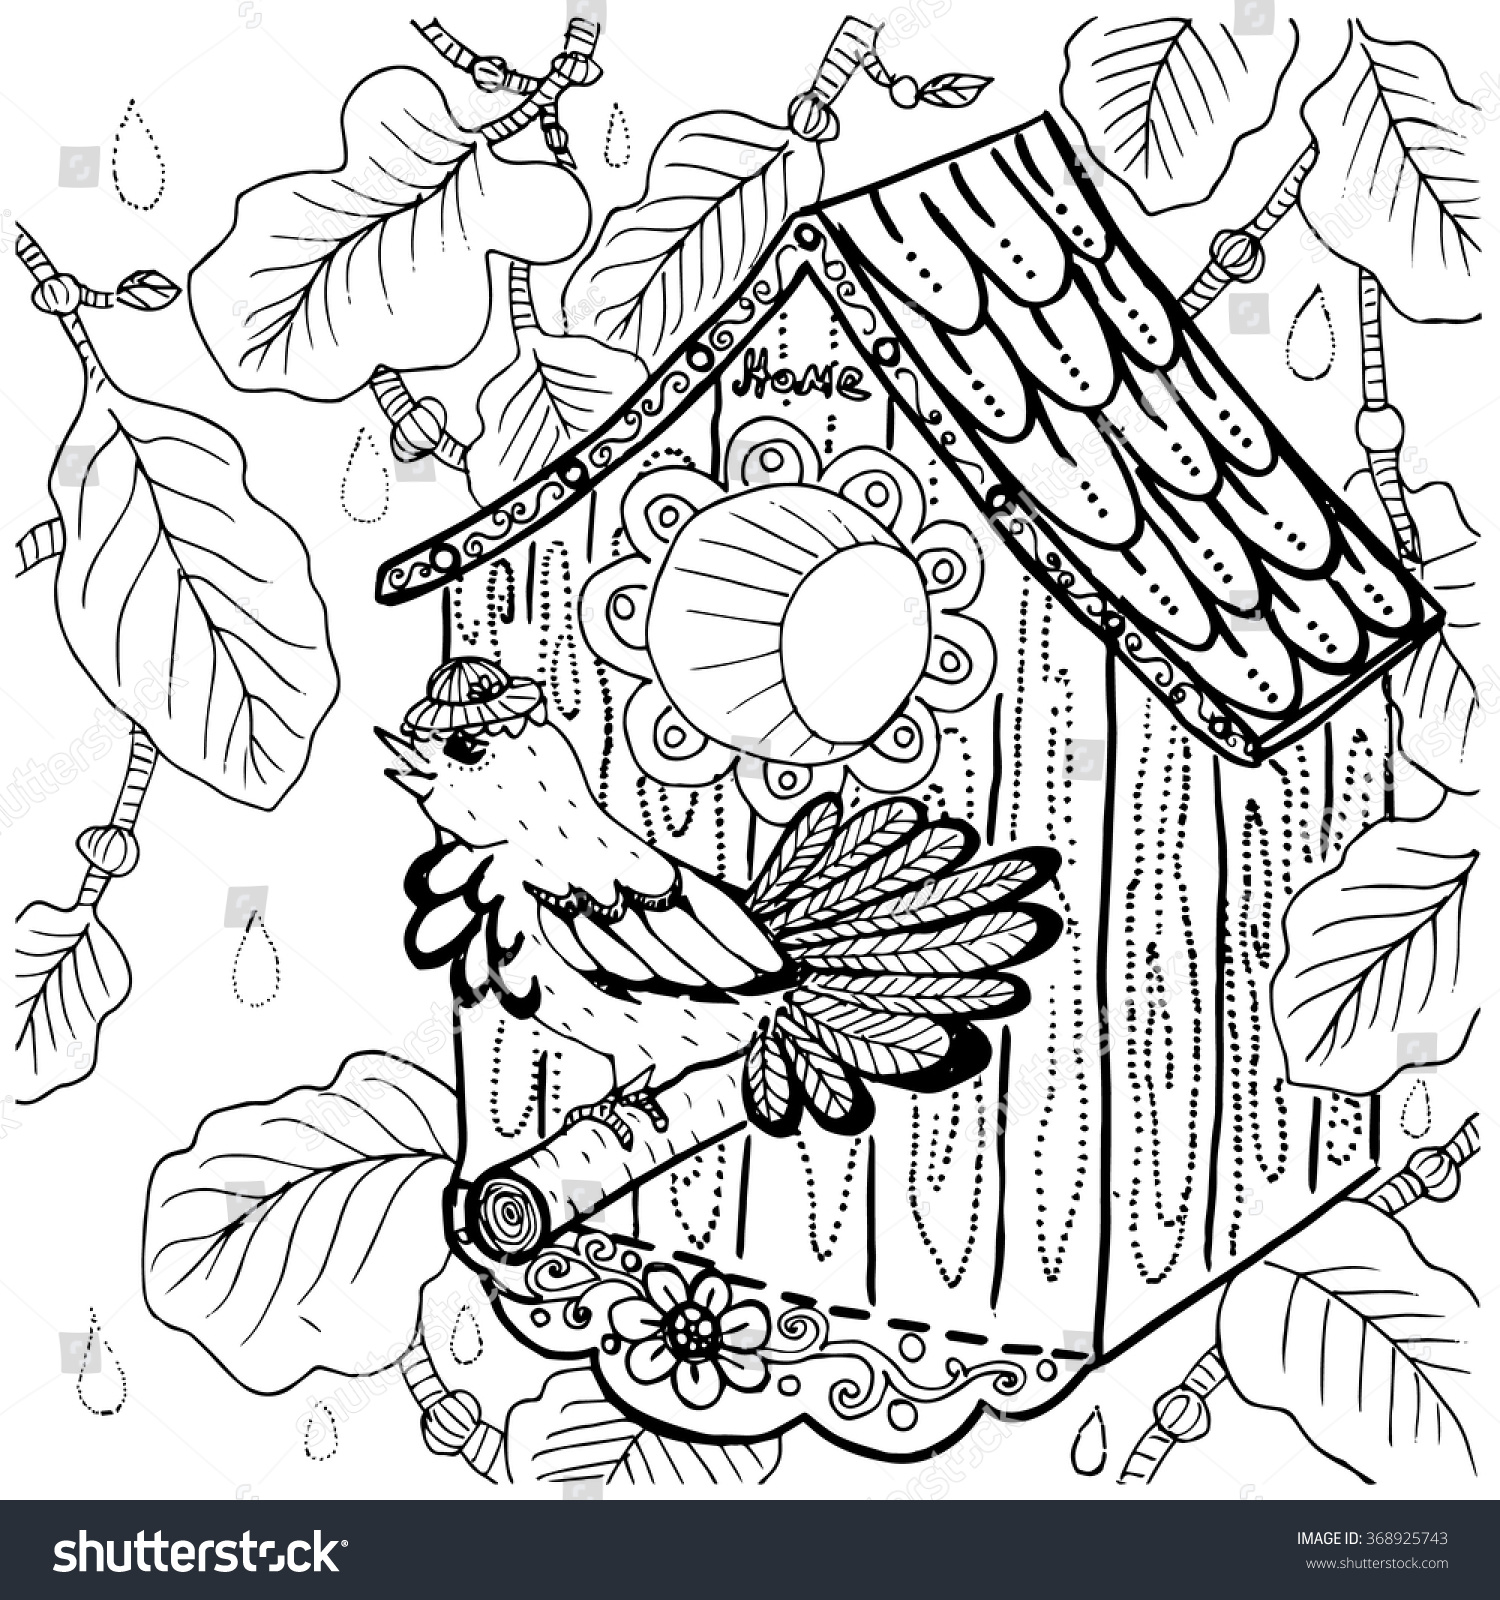 Birdhouse coloring sheet - Hand Drawn Bird In Hat By The Bird House Home Sweet Home Concept Illustration